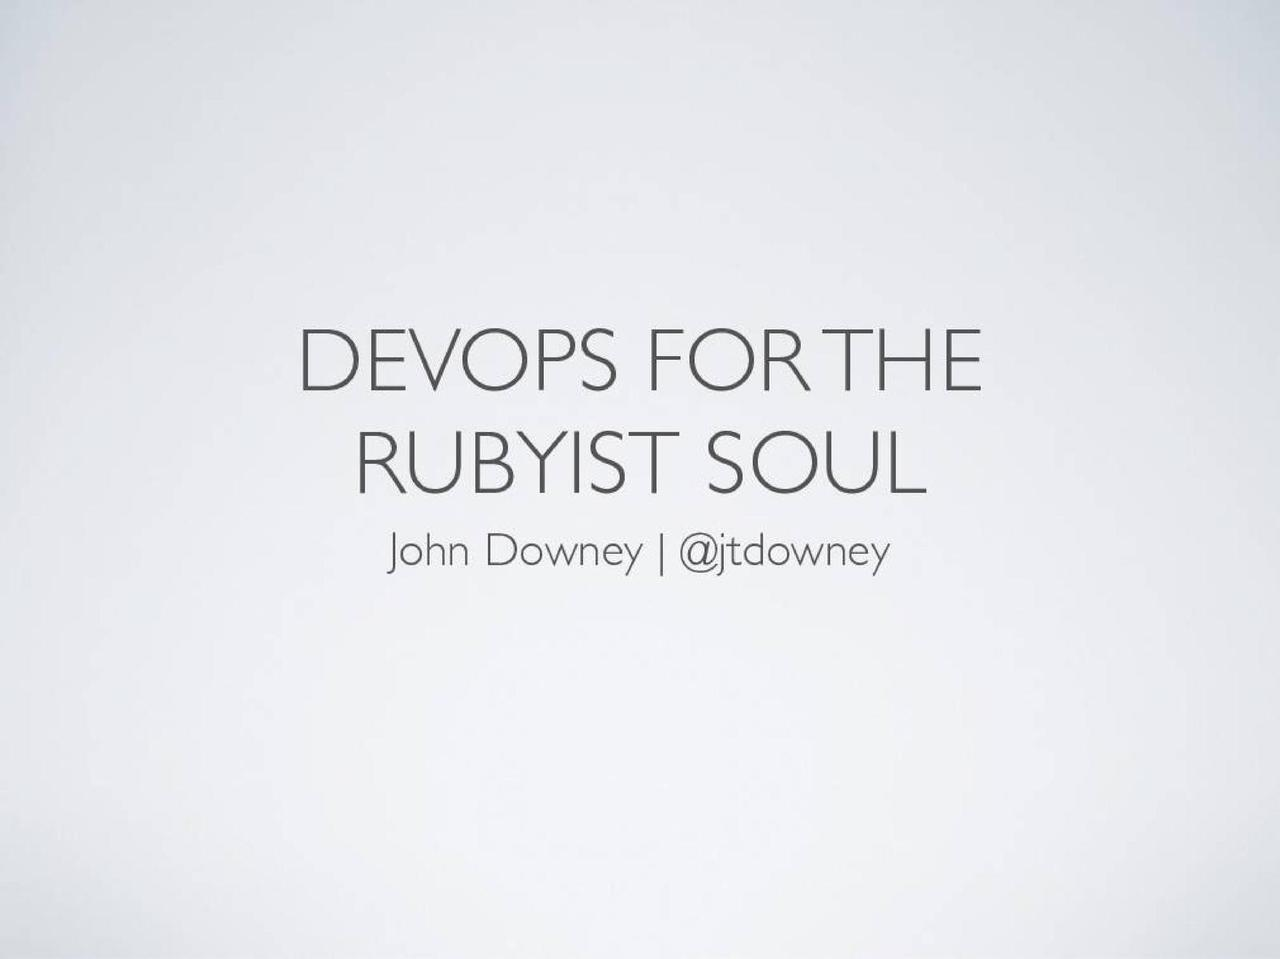 DevOps for the Rubyist Soul at Steel City Ruby 2013